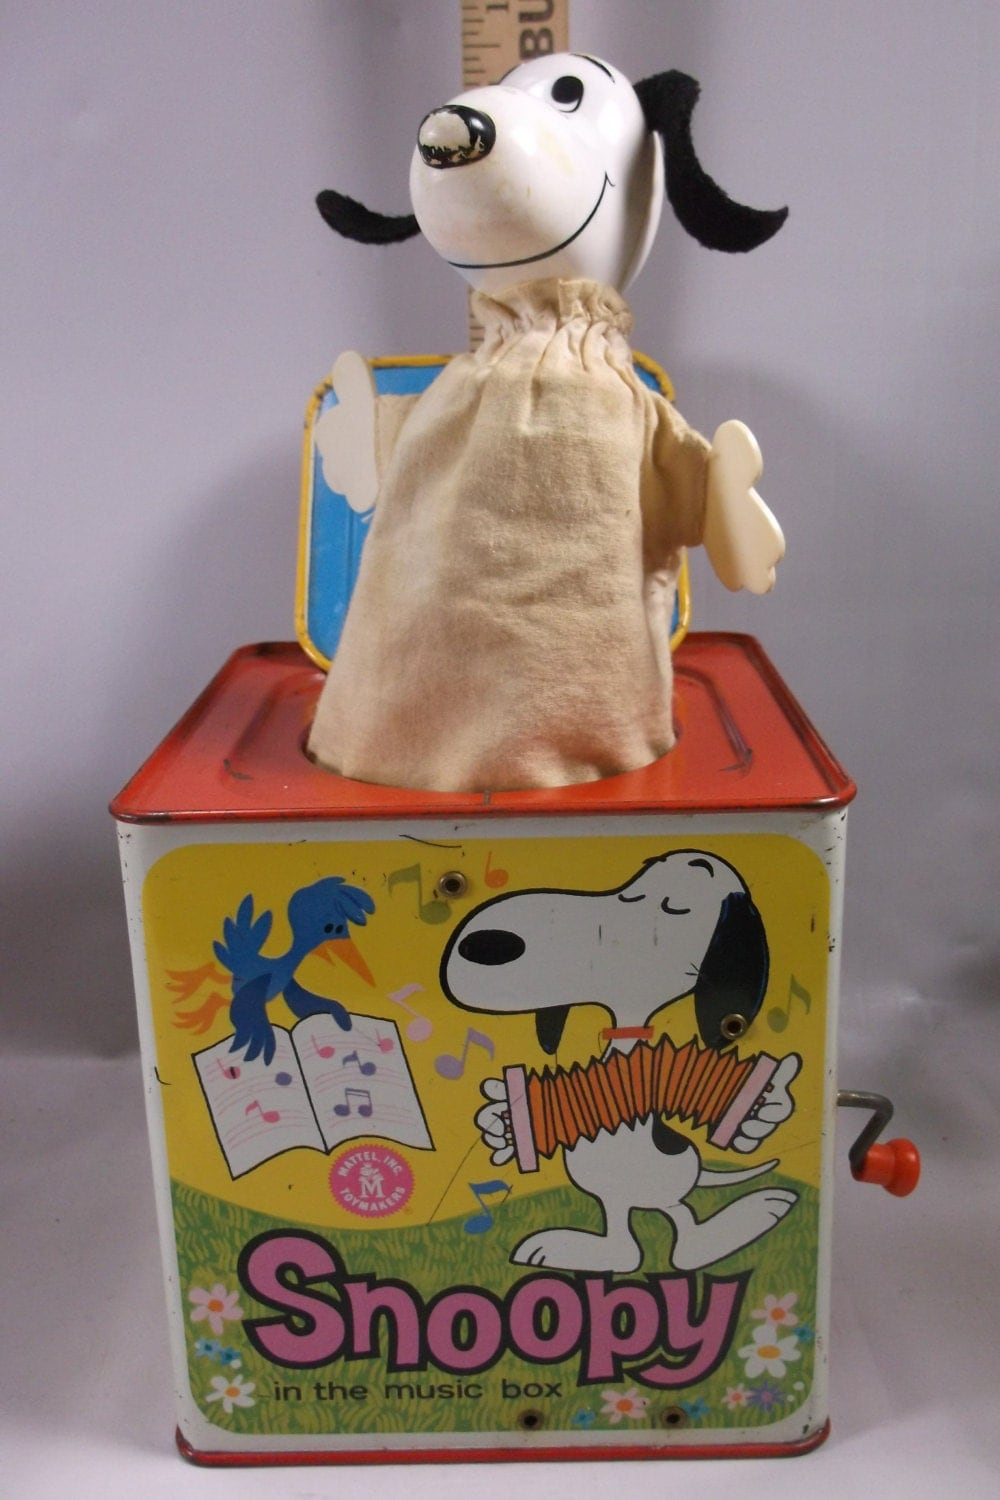 Old Mattel Toys : Vintage snoopy jack in the music box toy by mattel inc